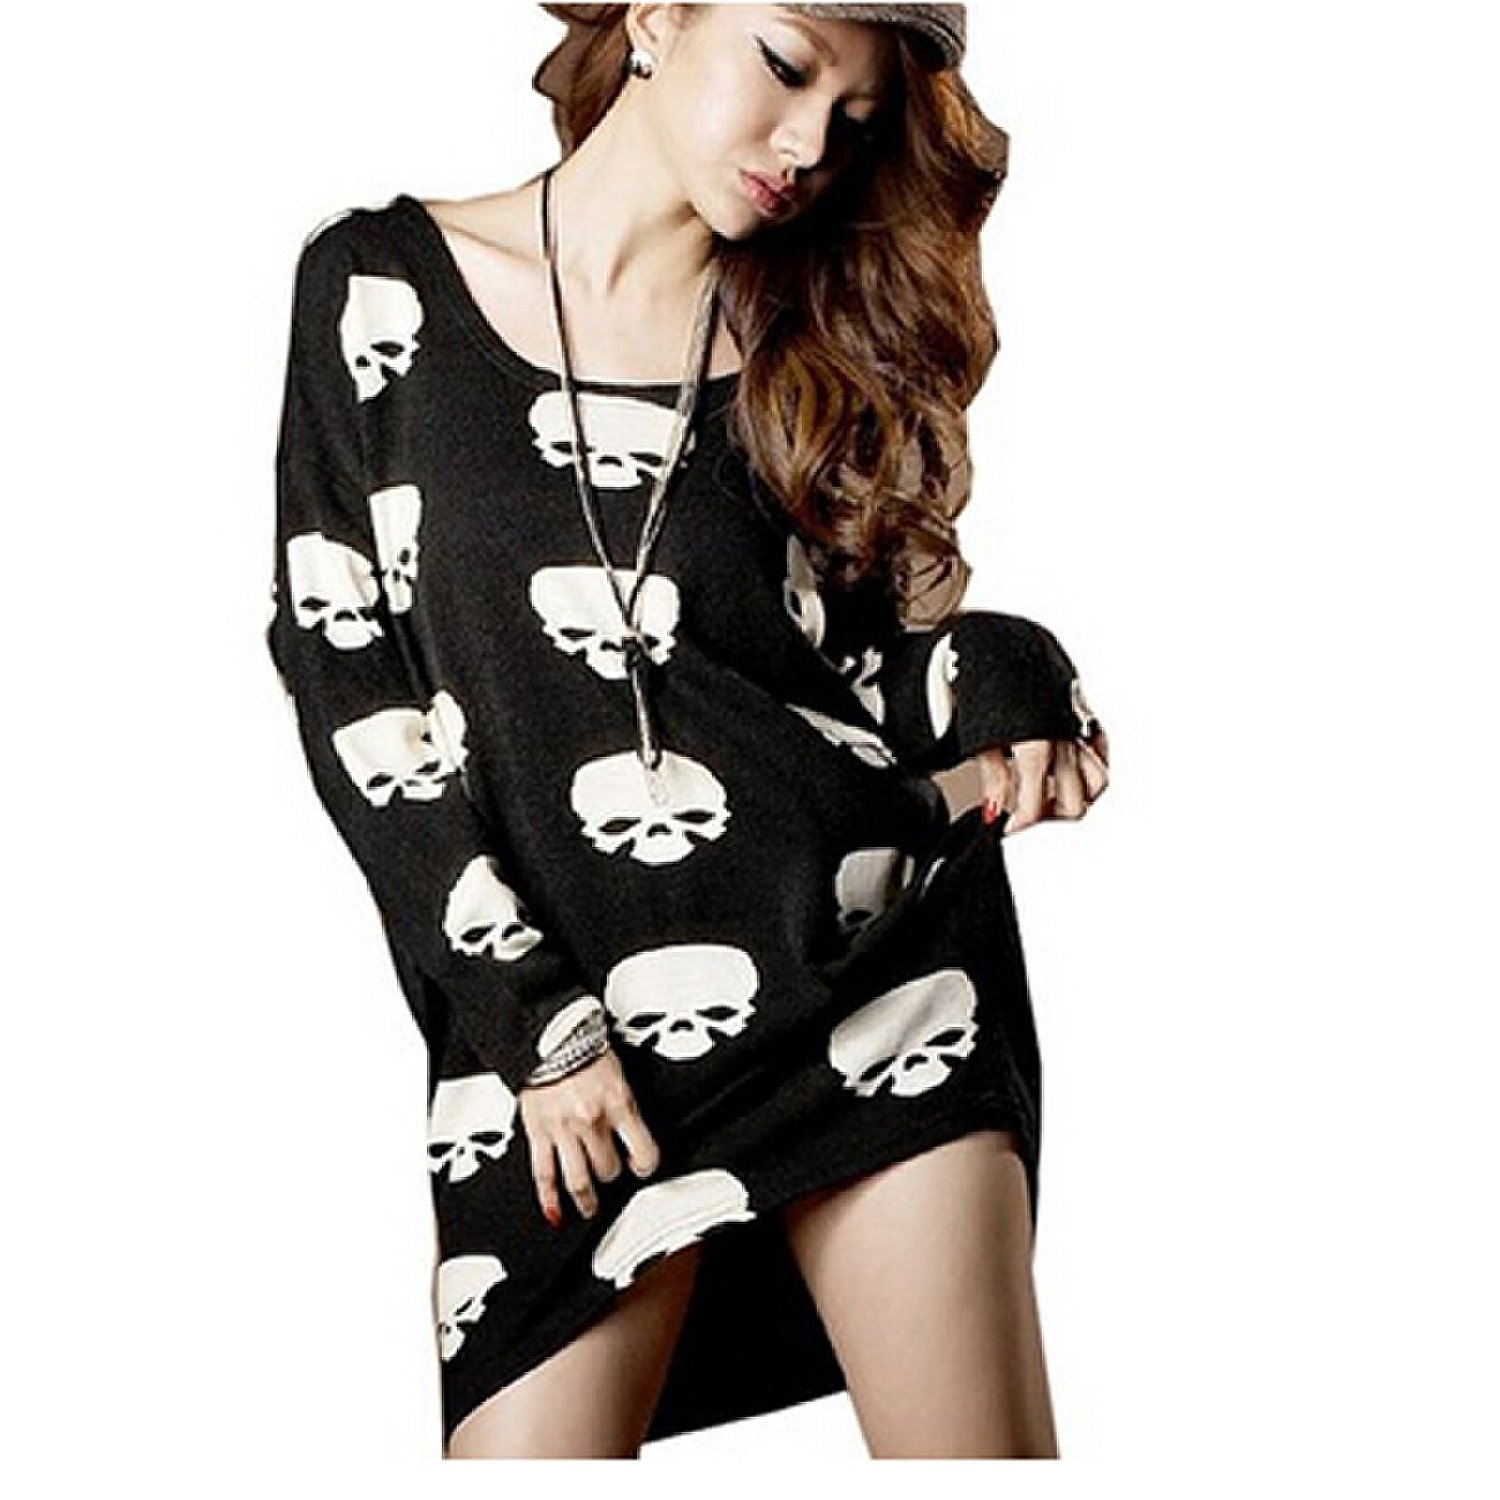 Amazon.com: women skull head pattern punk irregular slim fit base t